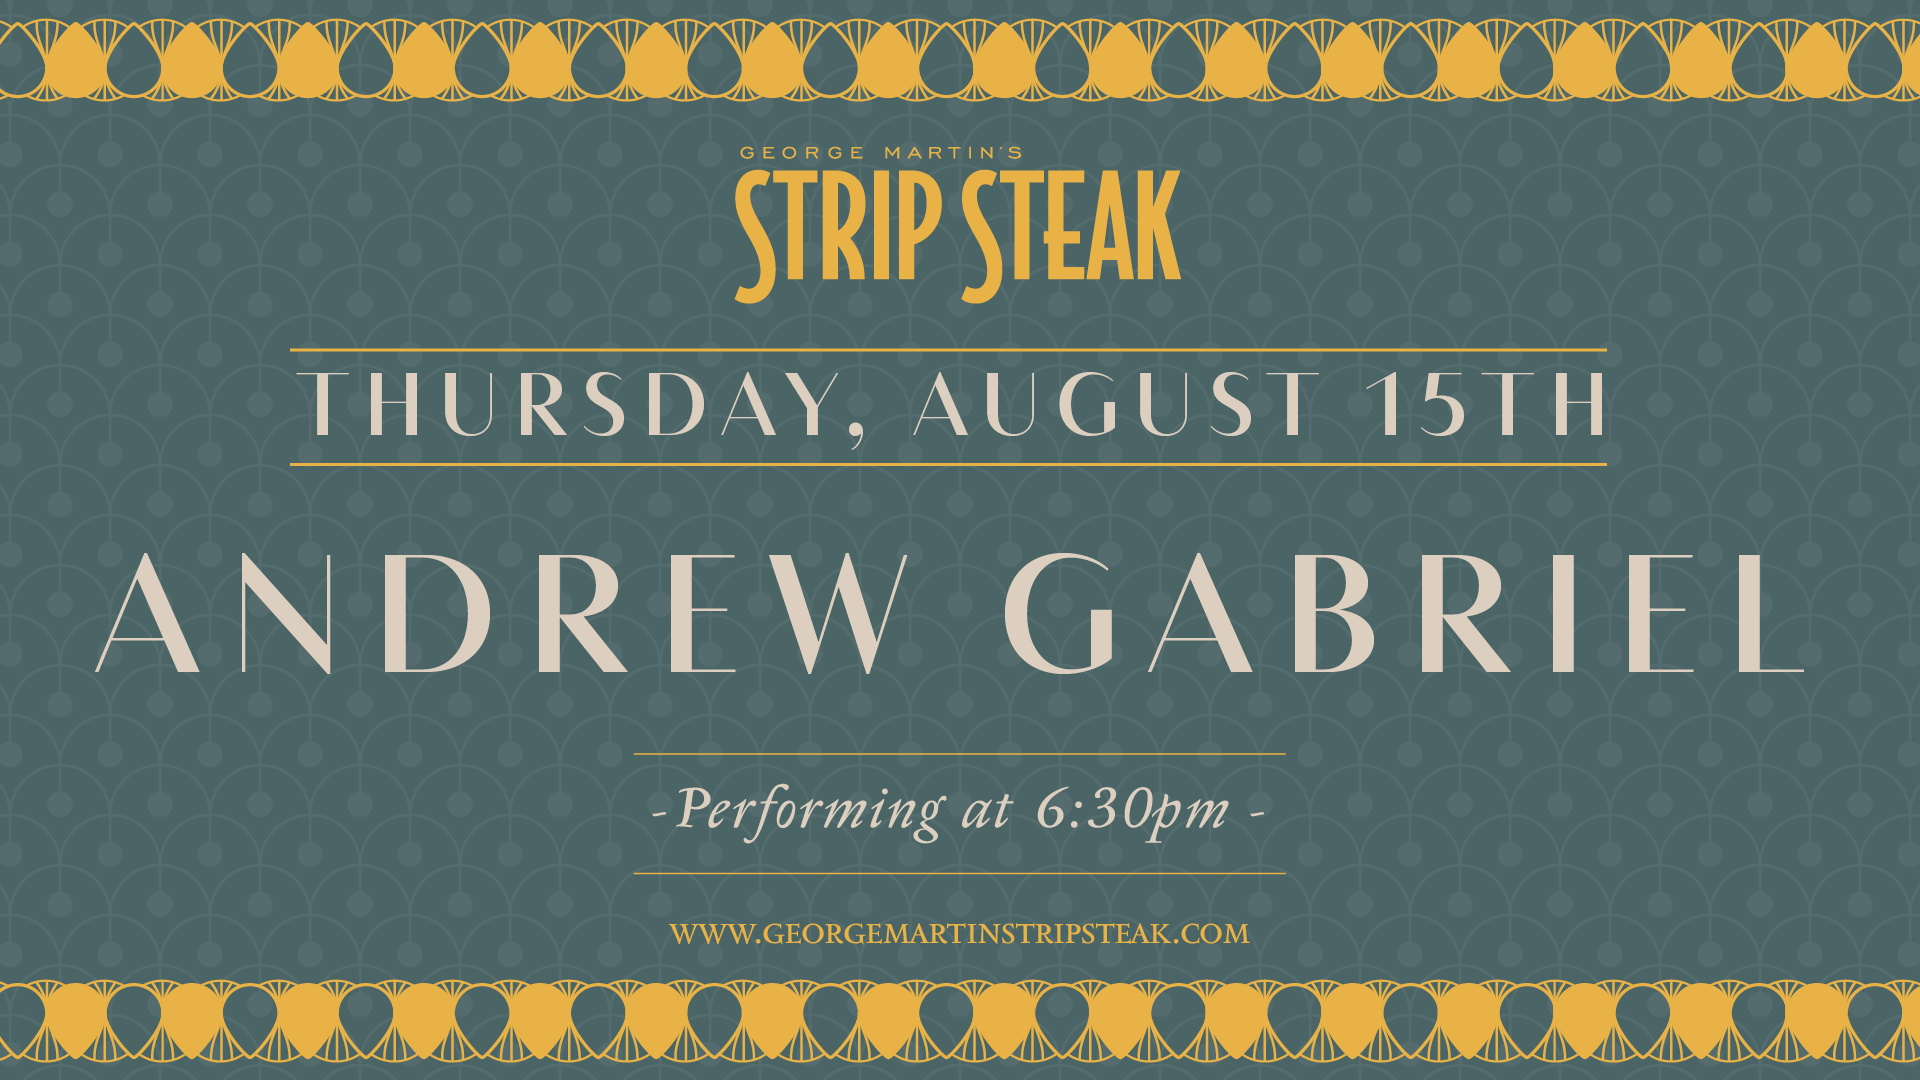 Flyer for live music with Andrew Gabriel at 6:30pm on August 15th